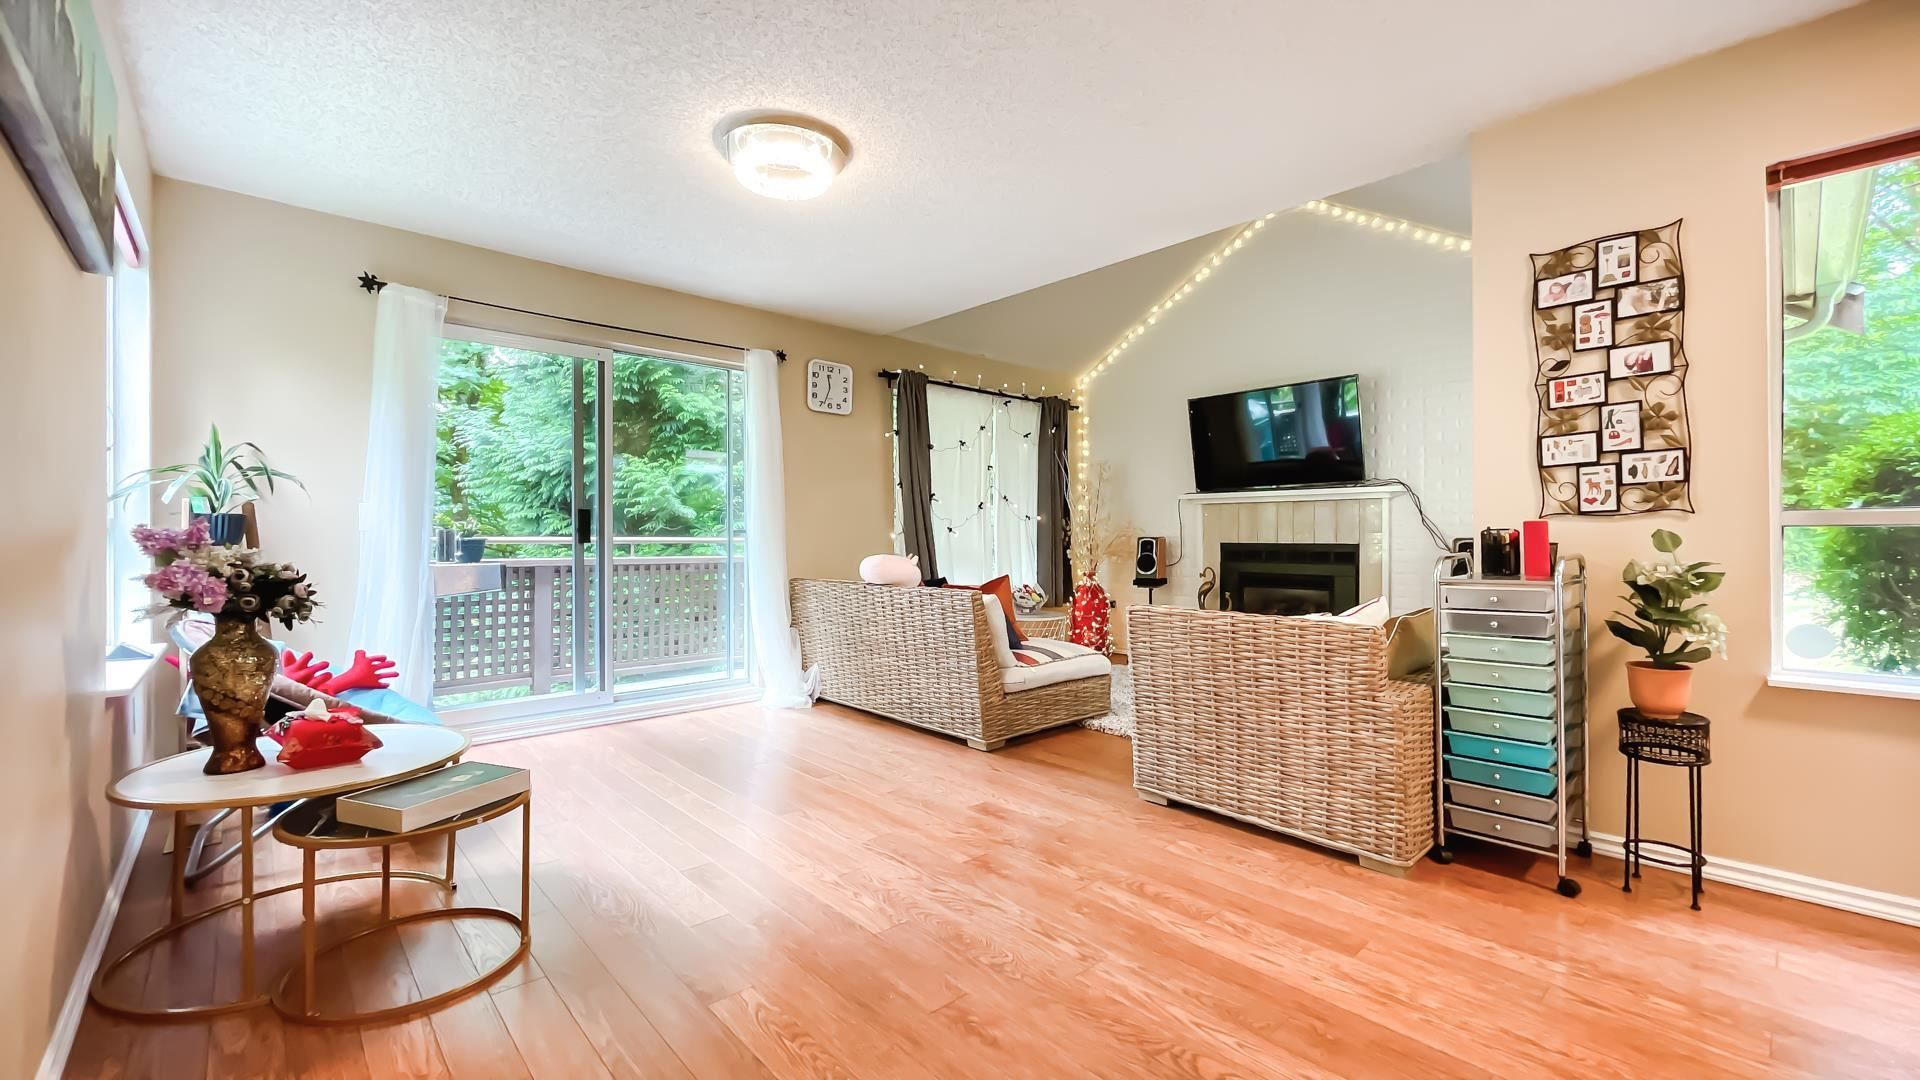 Photo 5: Photos: 66 9000 ASH GROVE CRESCENT in Burnaby: Forest Hills BN Townhouse for sale (Burnaby North)  : MLS®# R2603744